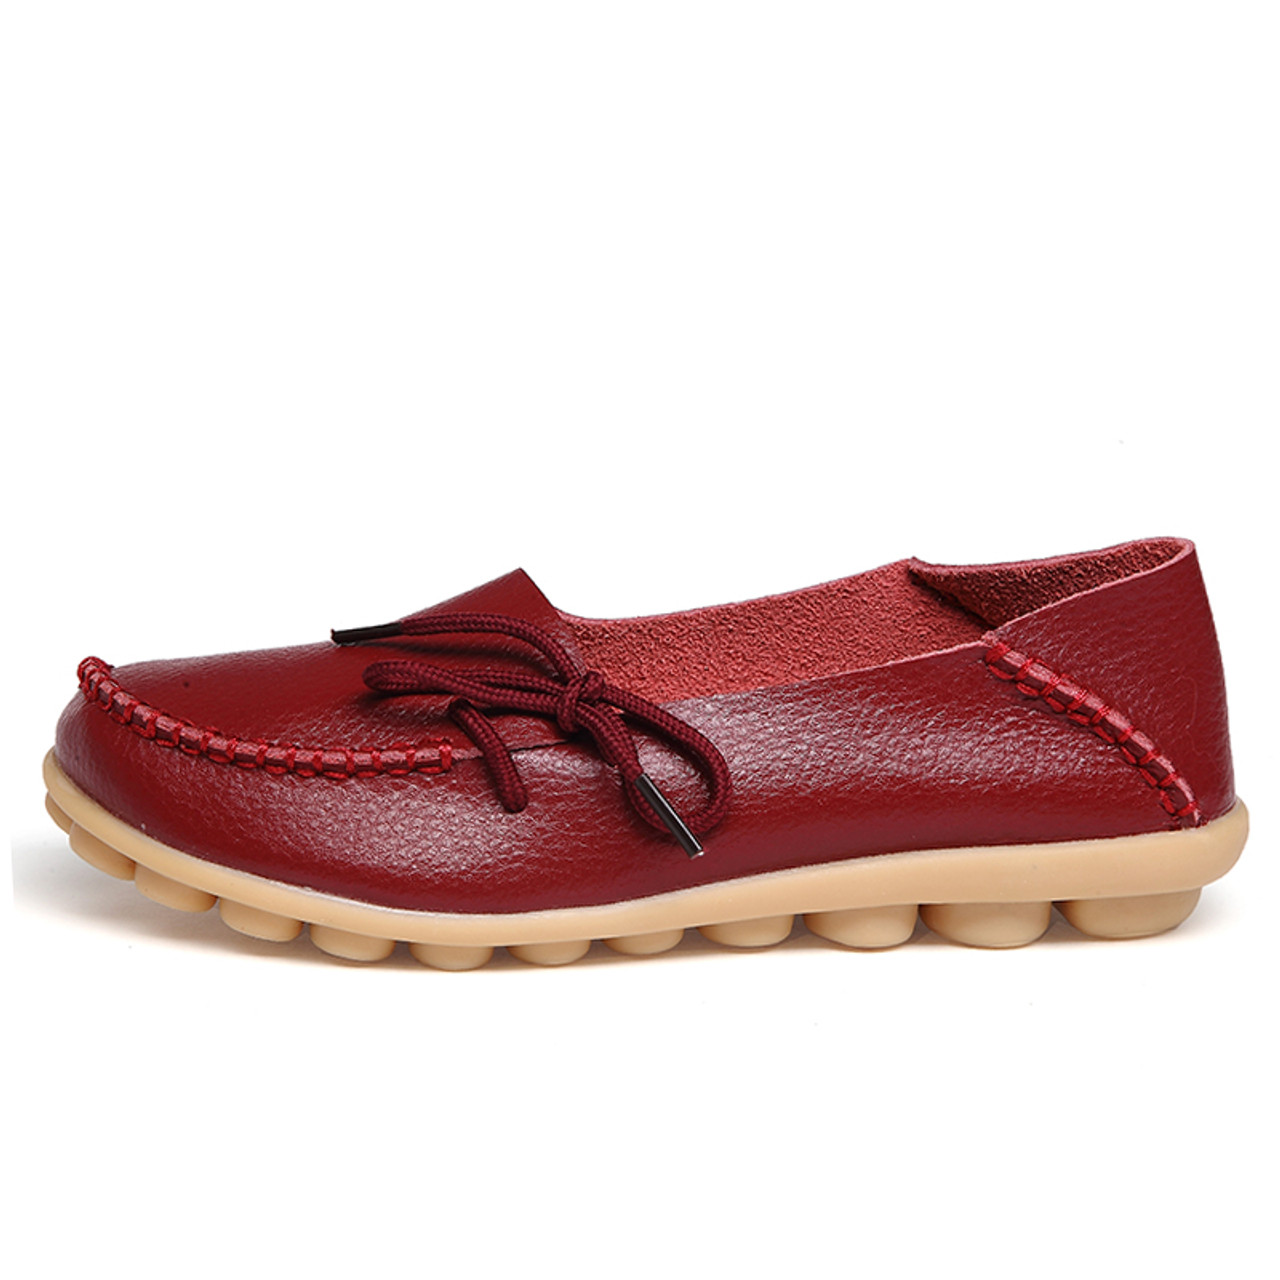 3beabf36 ... New Real Leather Women Flats Moccasins Loafers Ladies Shoes Wild Driving  women Casual Shoes Leisure Concise ...